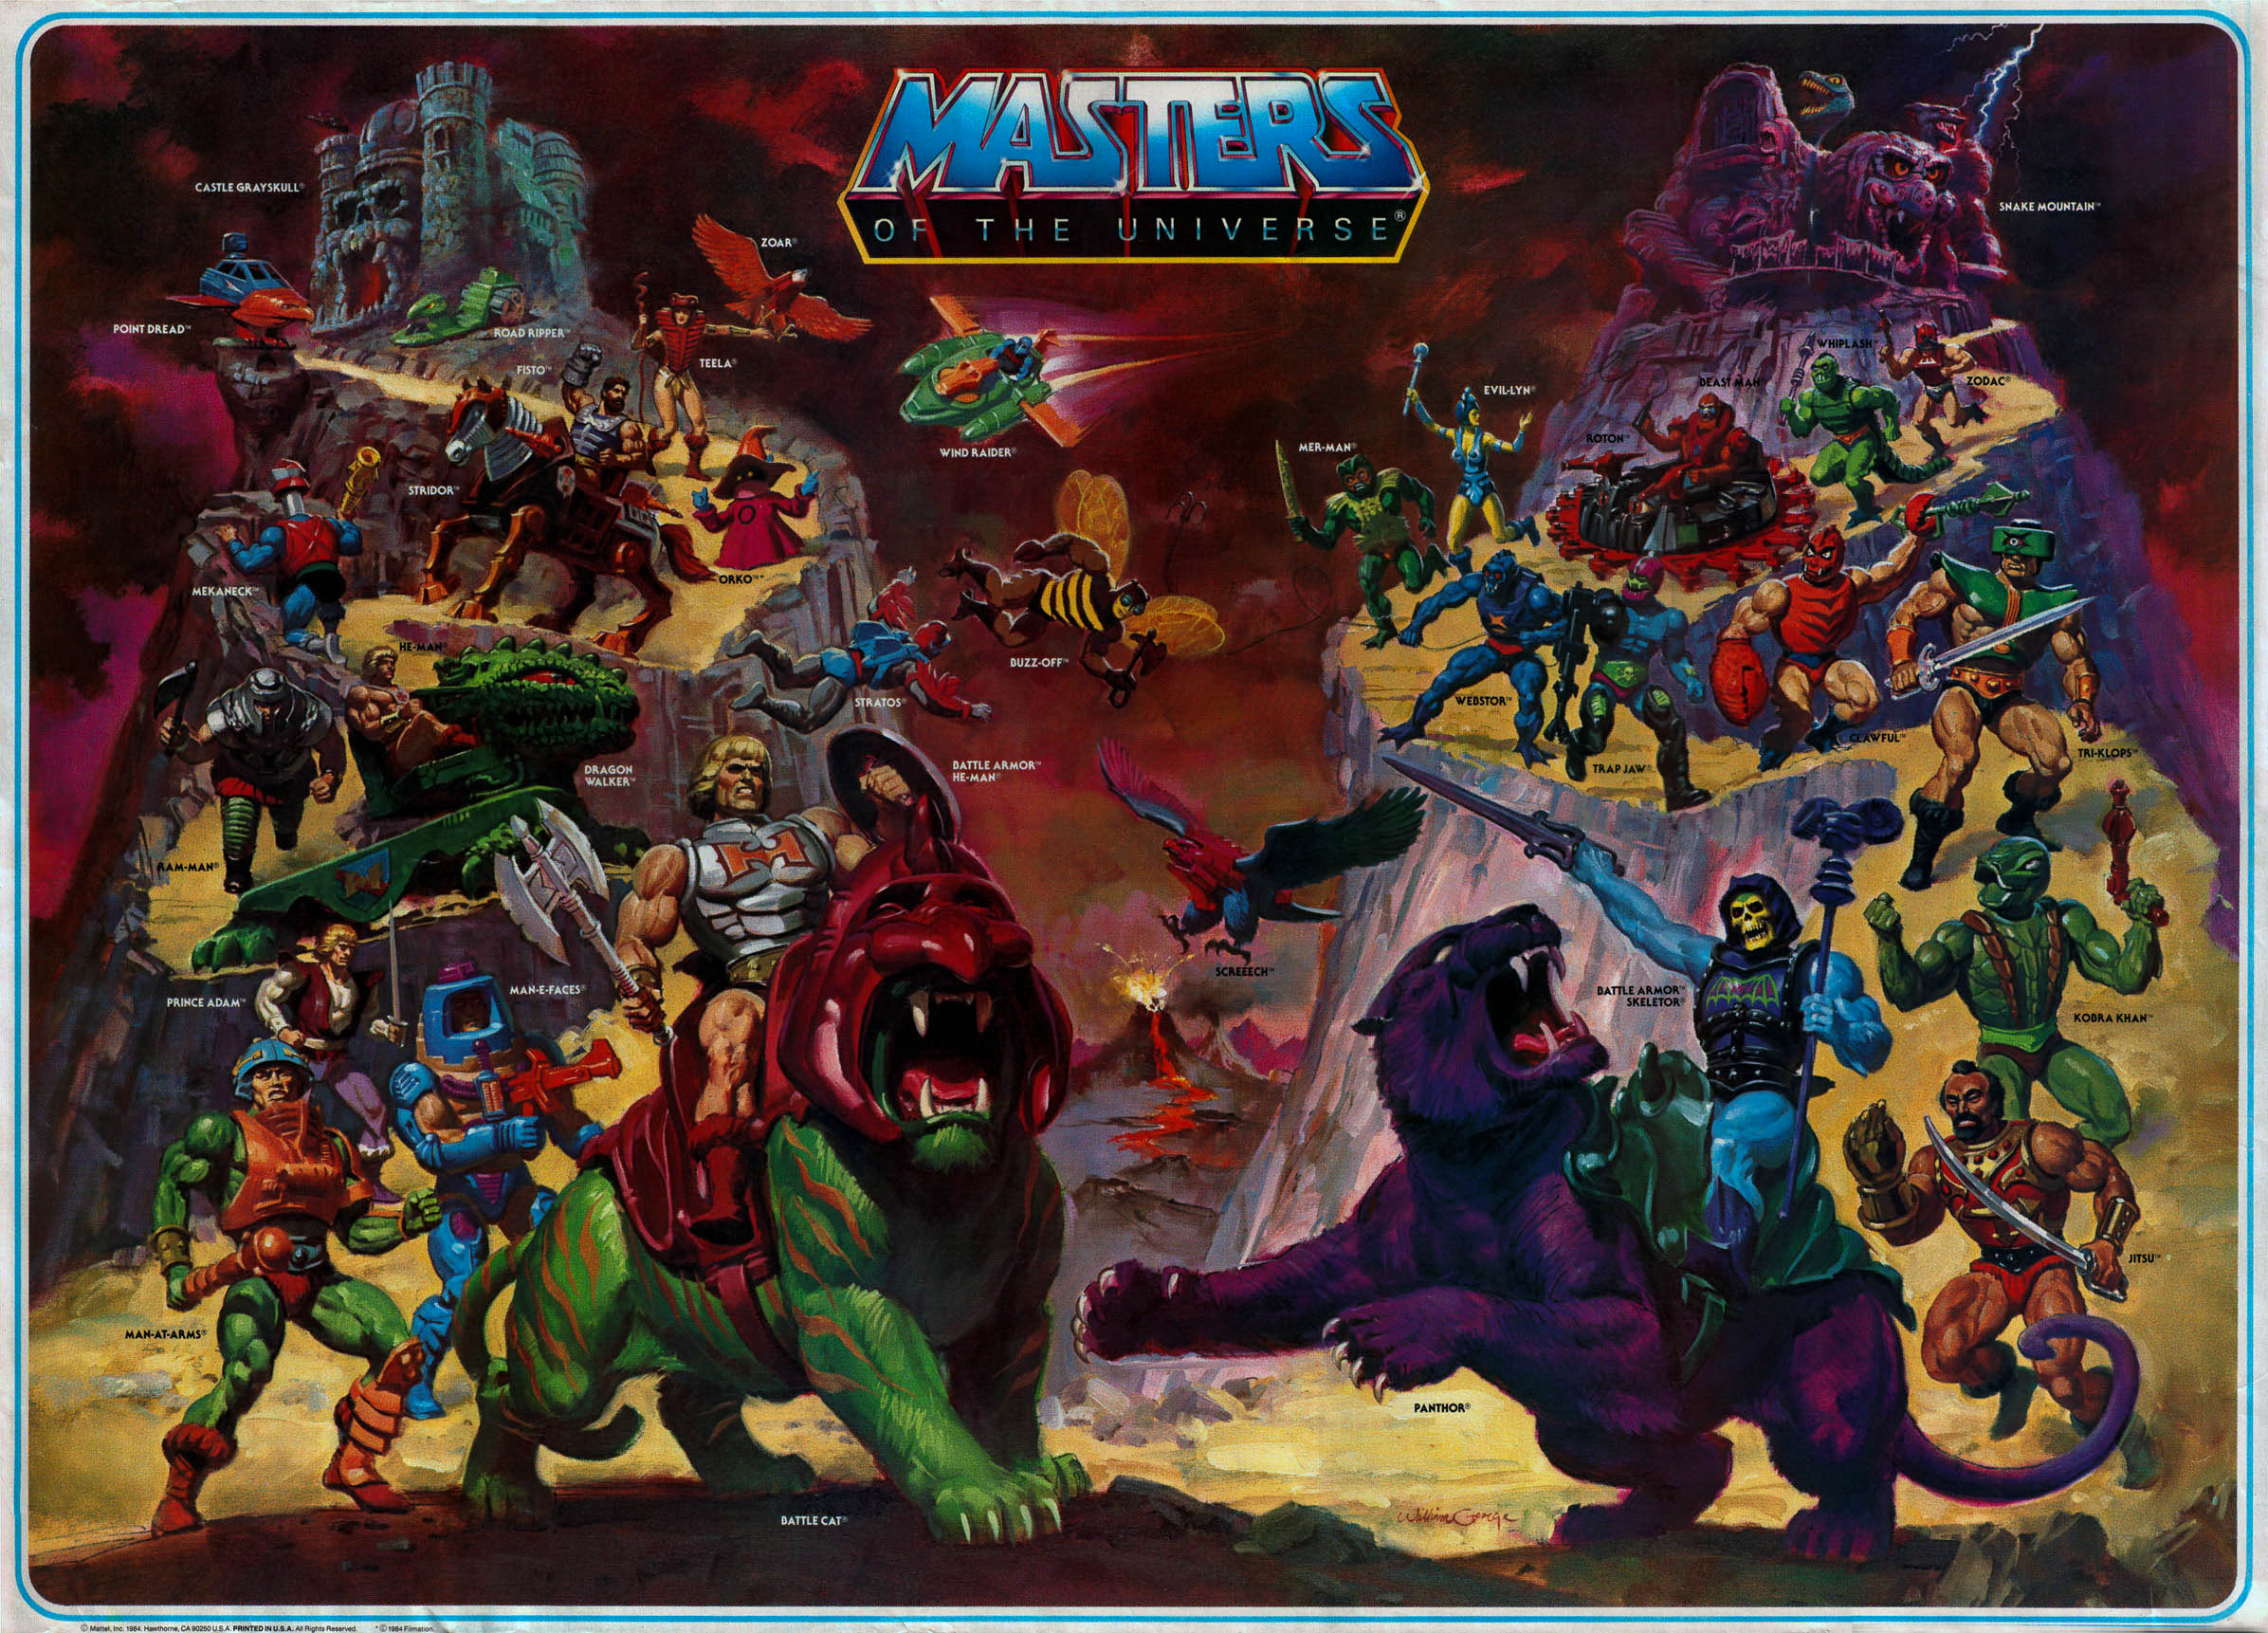 http://allhdwallpapers.com/wp-content/uploads/2015/06/Masters-Of-The-Universe-3.jpg